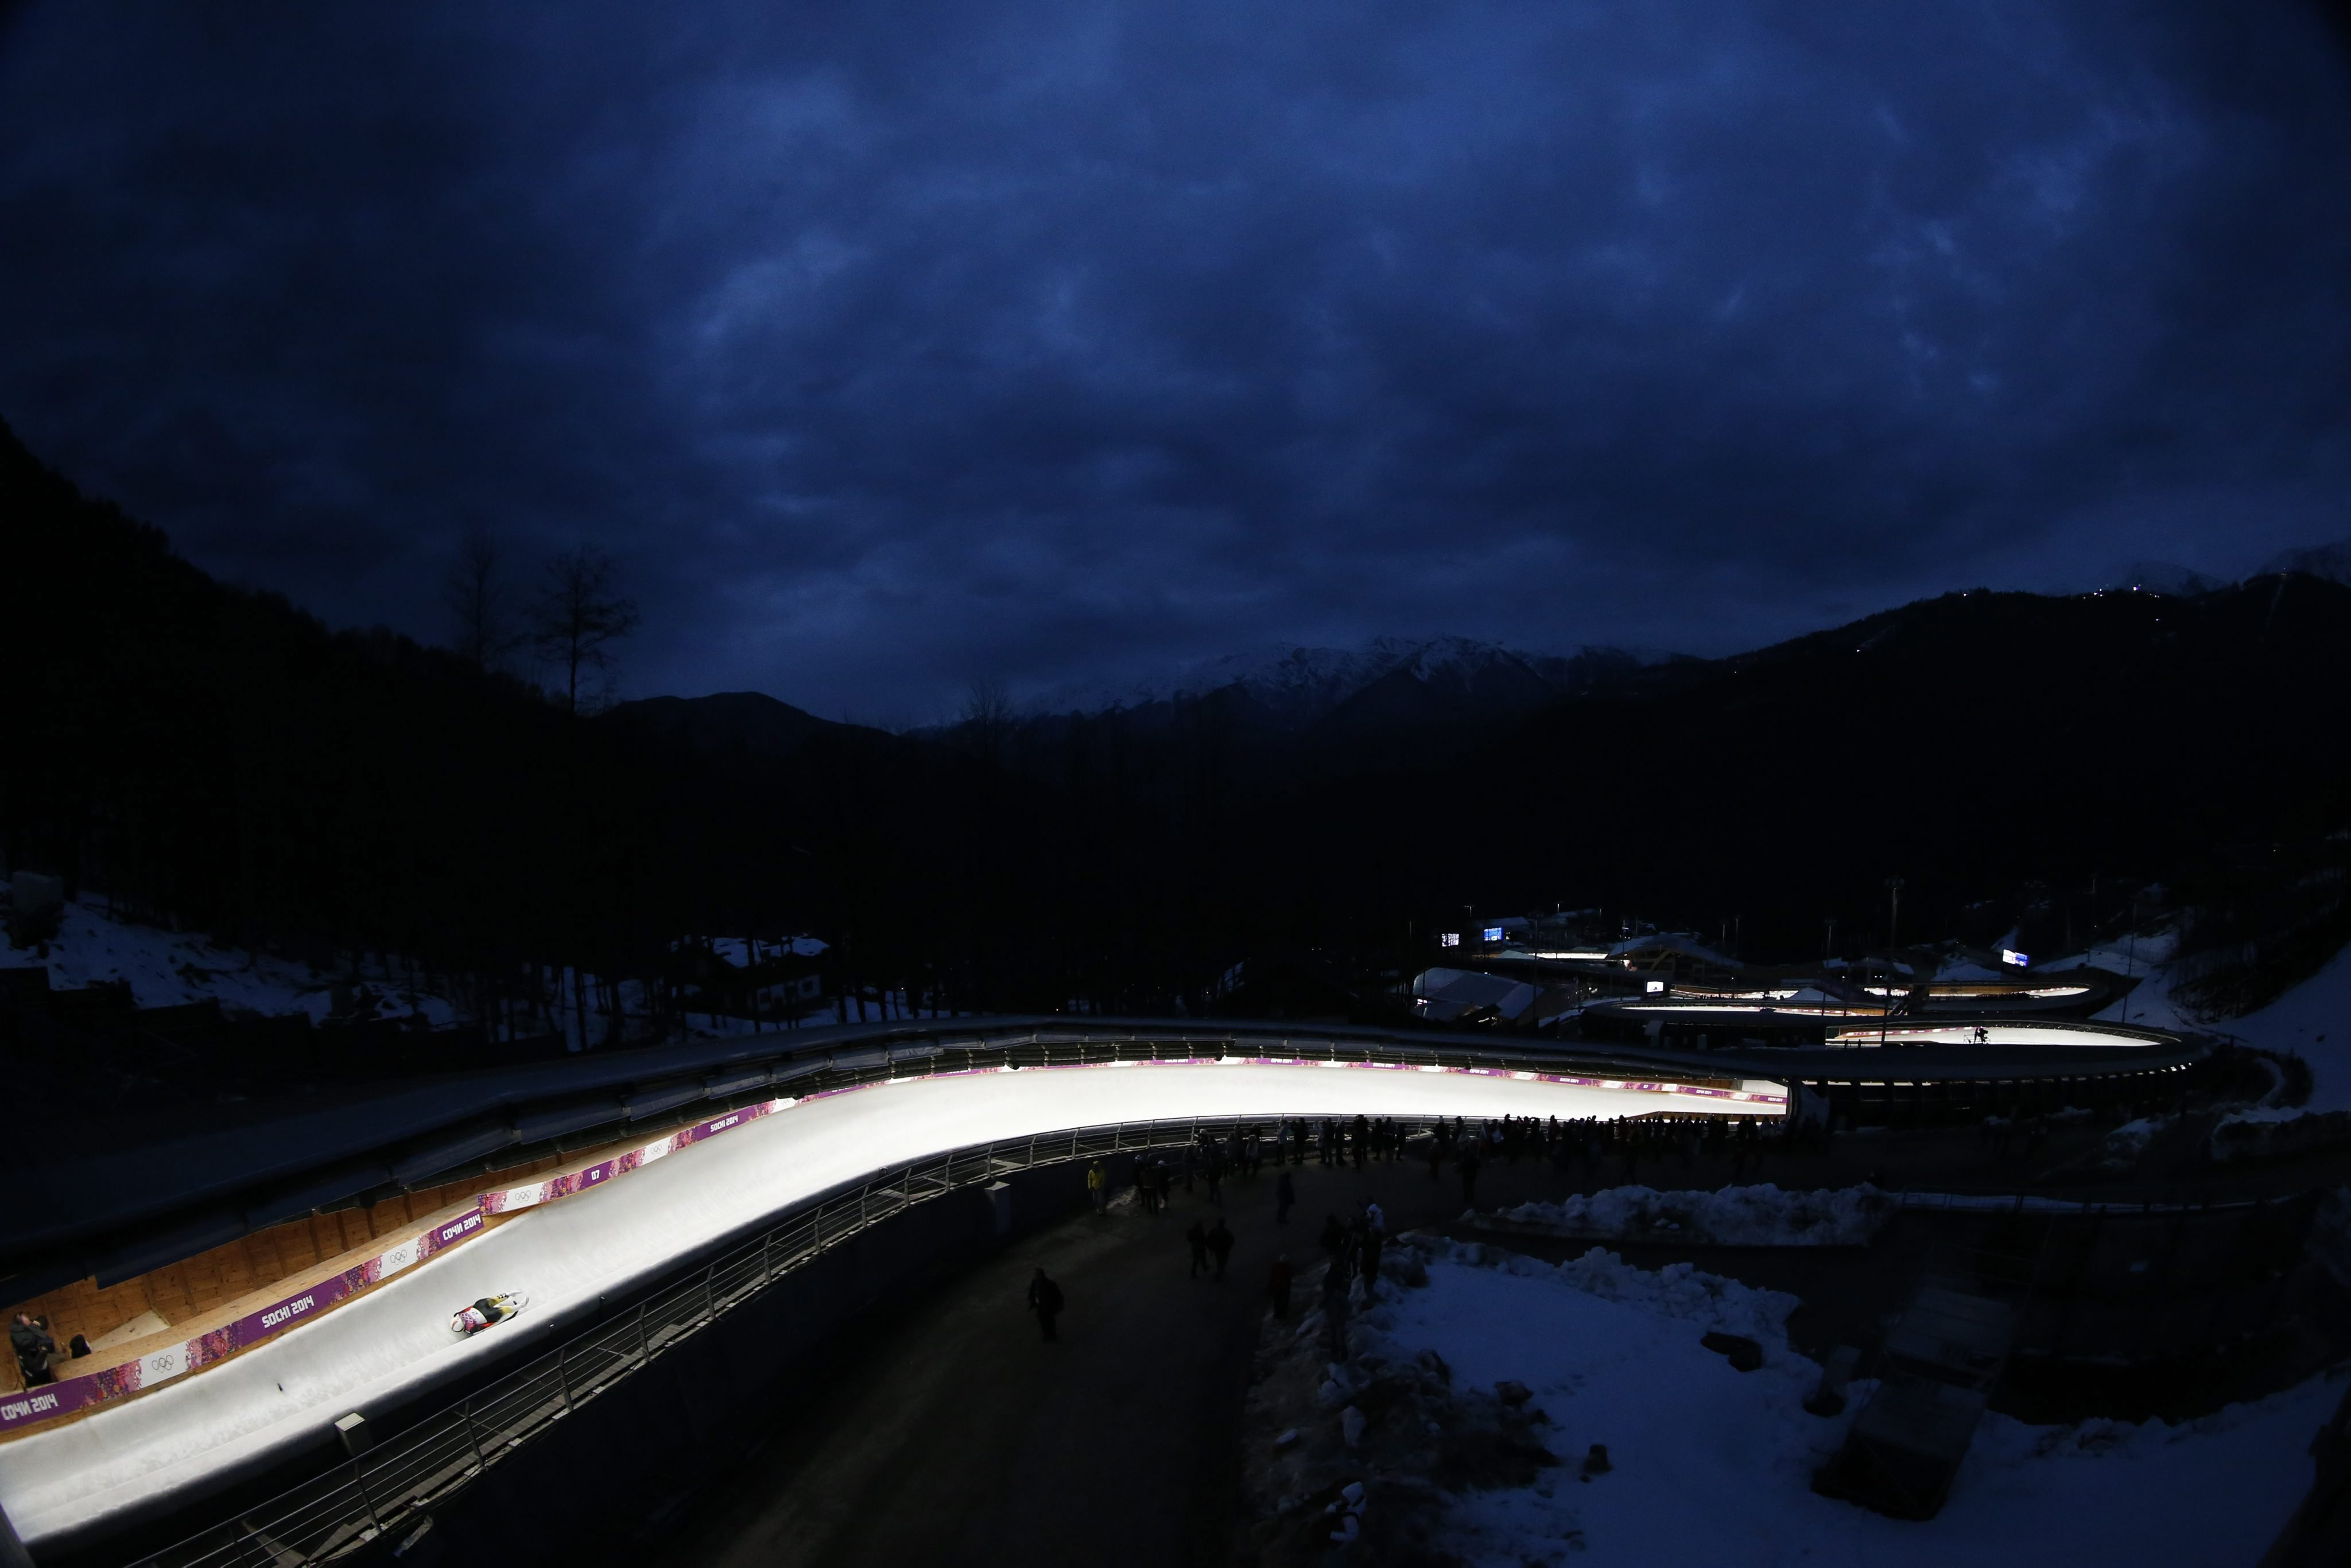 Natalie Geisenberger of Germany in action during the Women's Singles Luge competition at the Sanki Sliding Center.